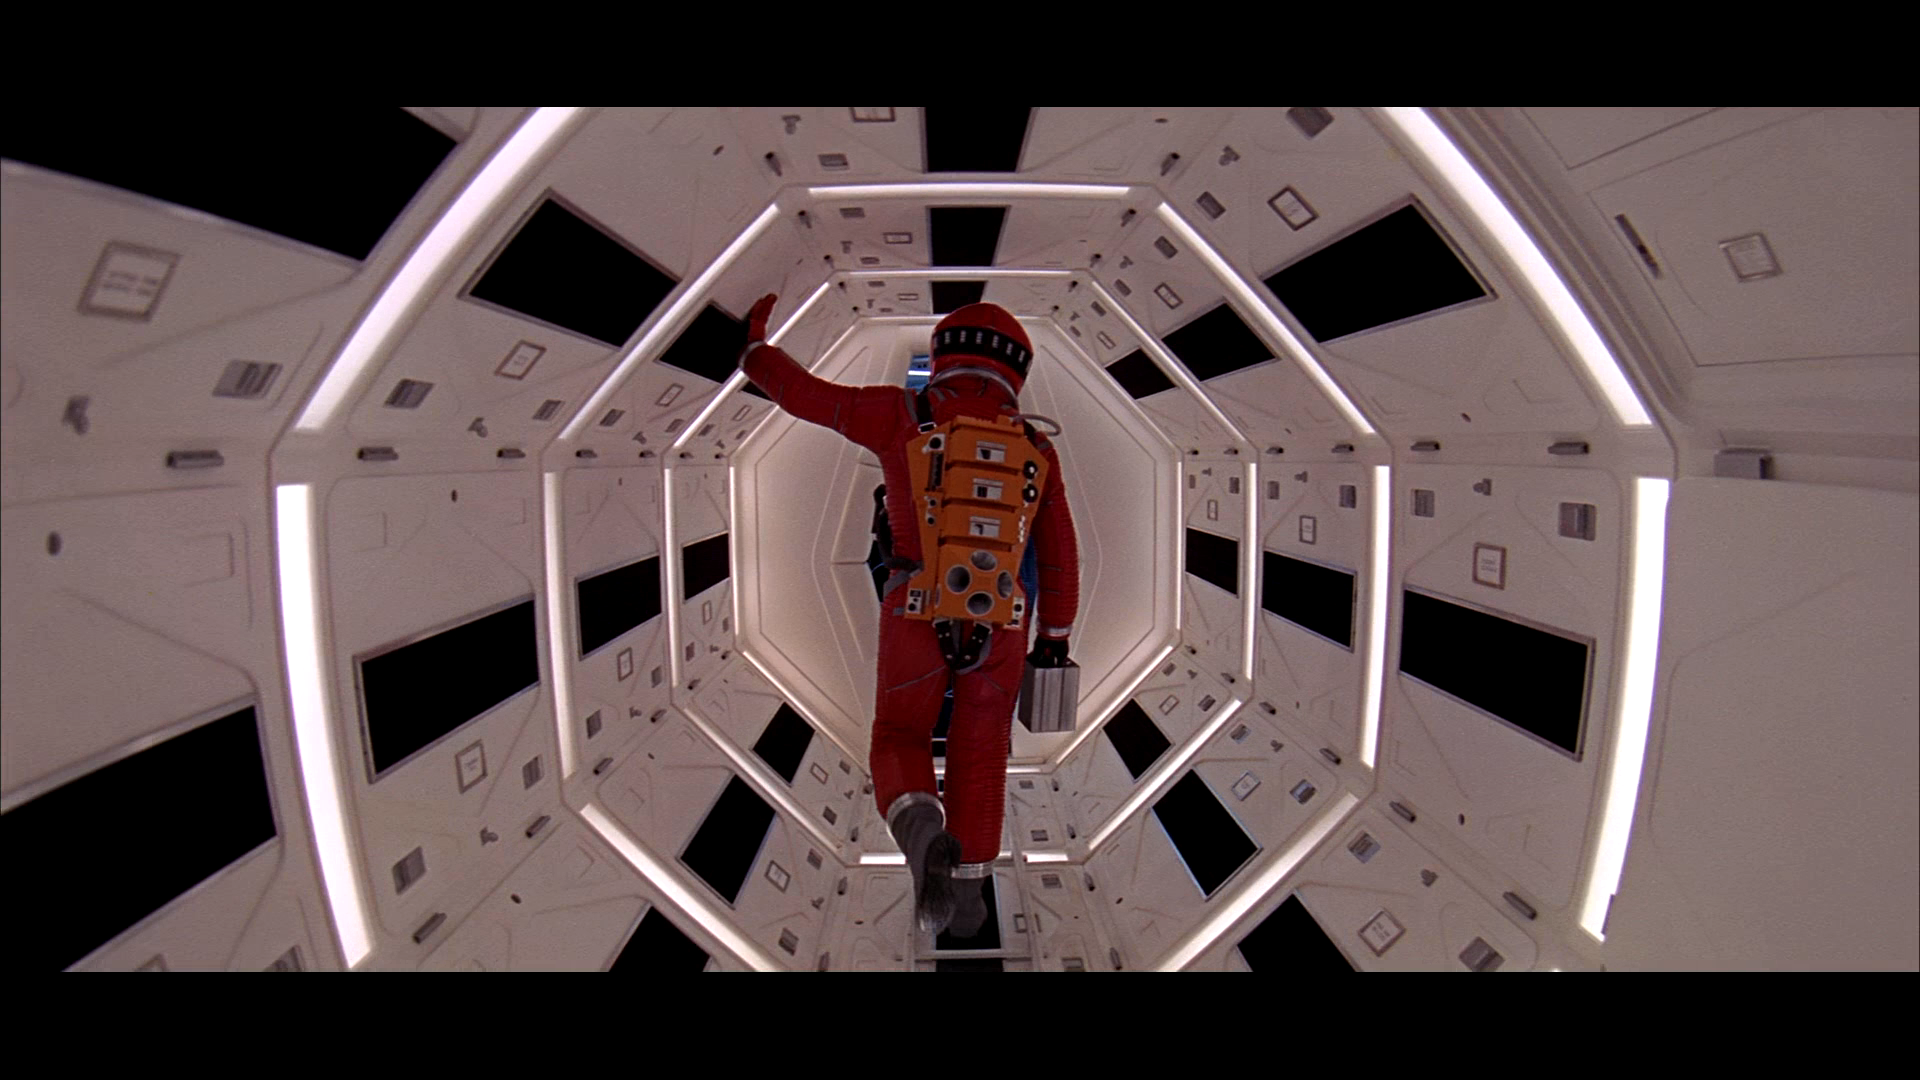 Images of 2001: A Space Odyssey | 1920x1080